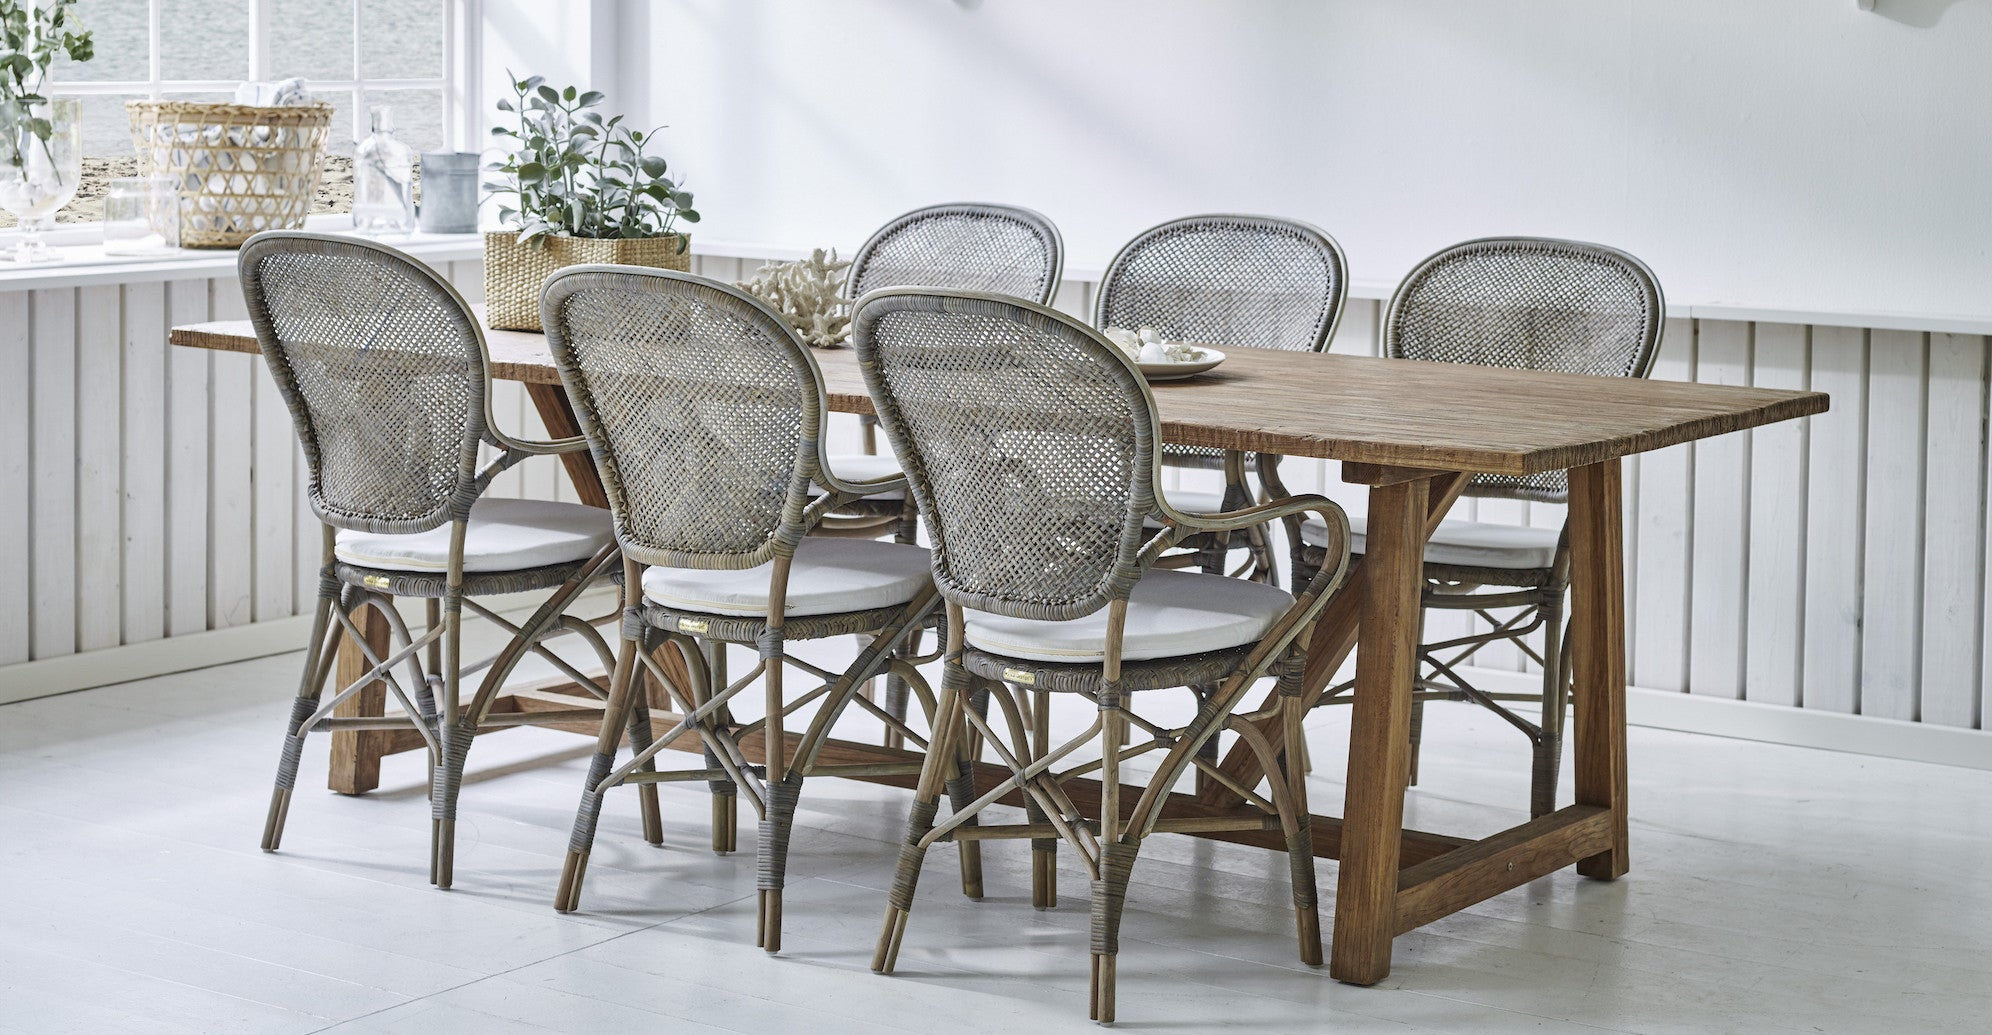 Sika Design USA I Handmade Wicker Rattan & Cafe Furniture